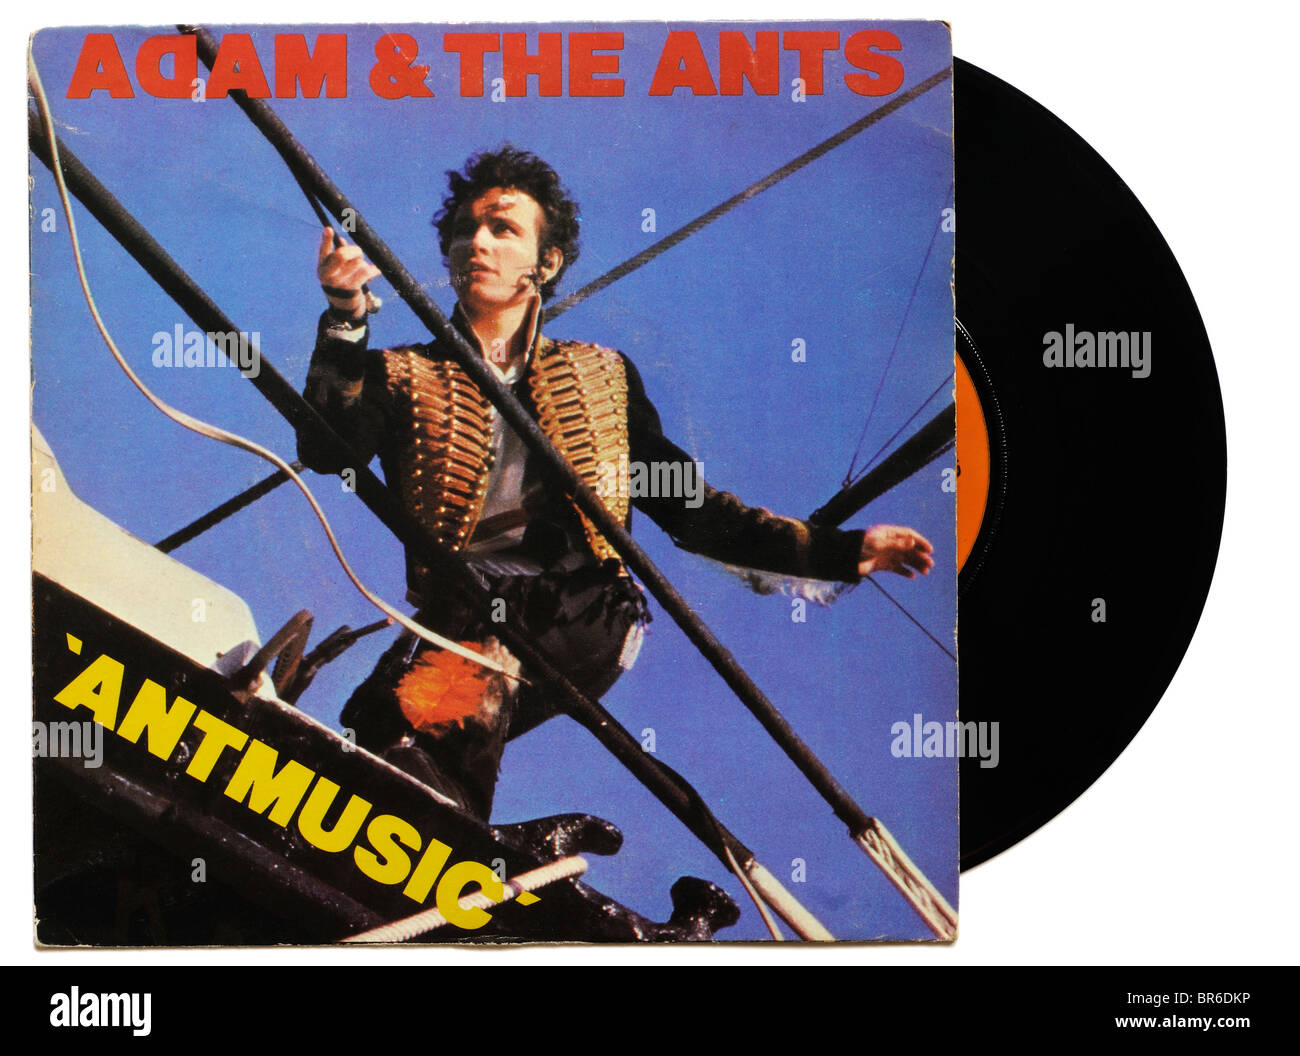 Adam and the Ants Antmusic single - Stock Image